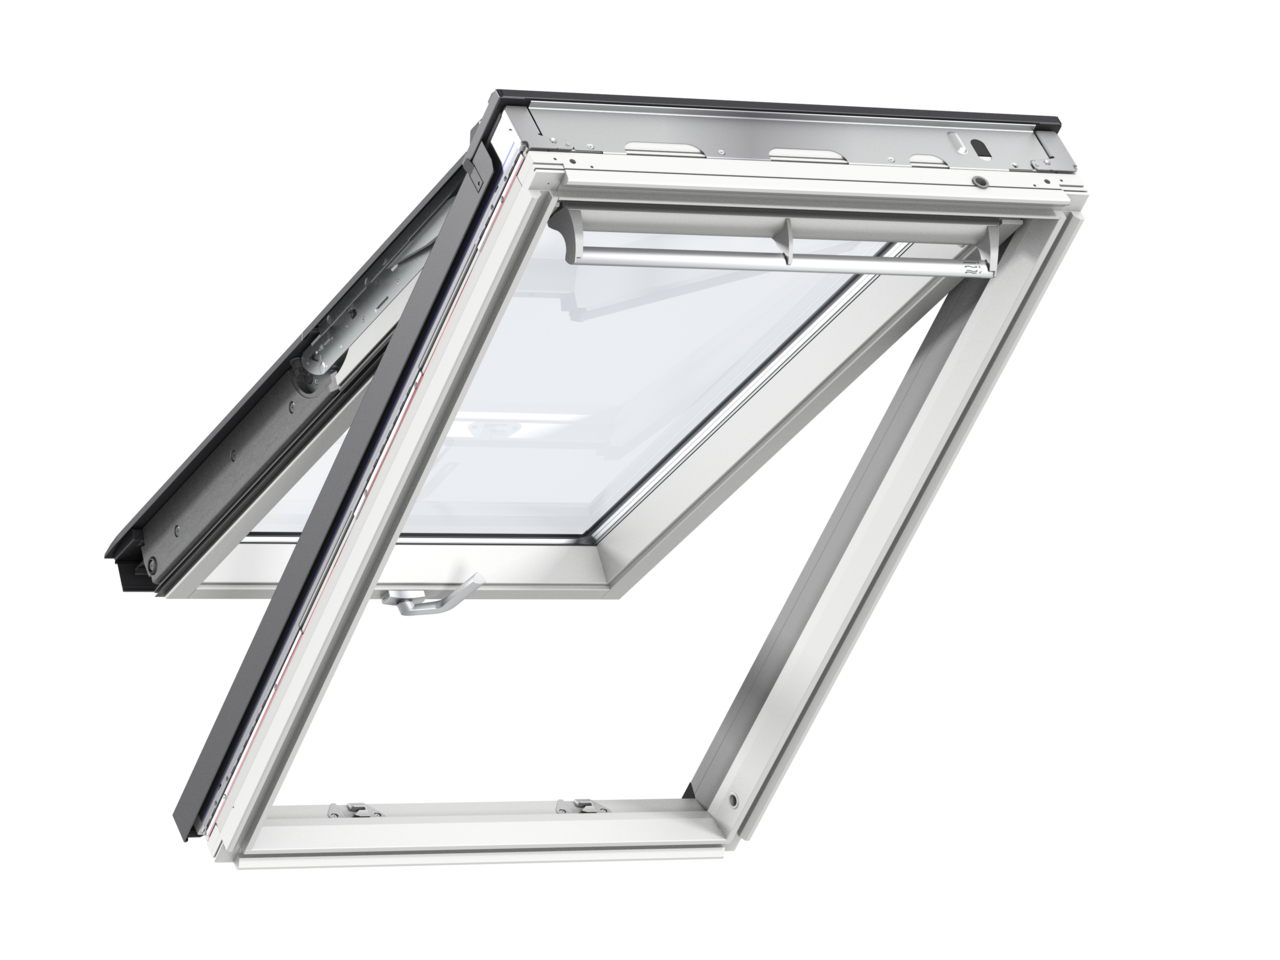 Velux GPL MK08 780 x 1400mm Top Hung Standard 70Pane Roof Window - White Painted